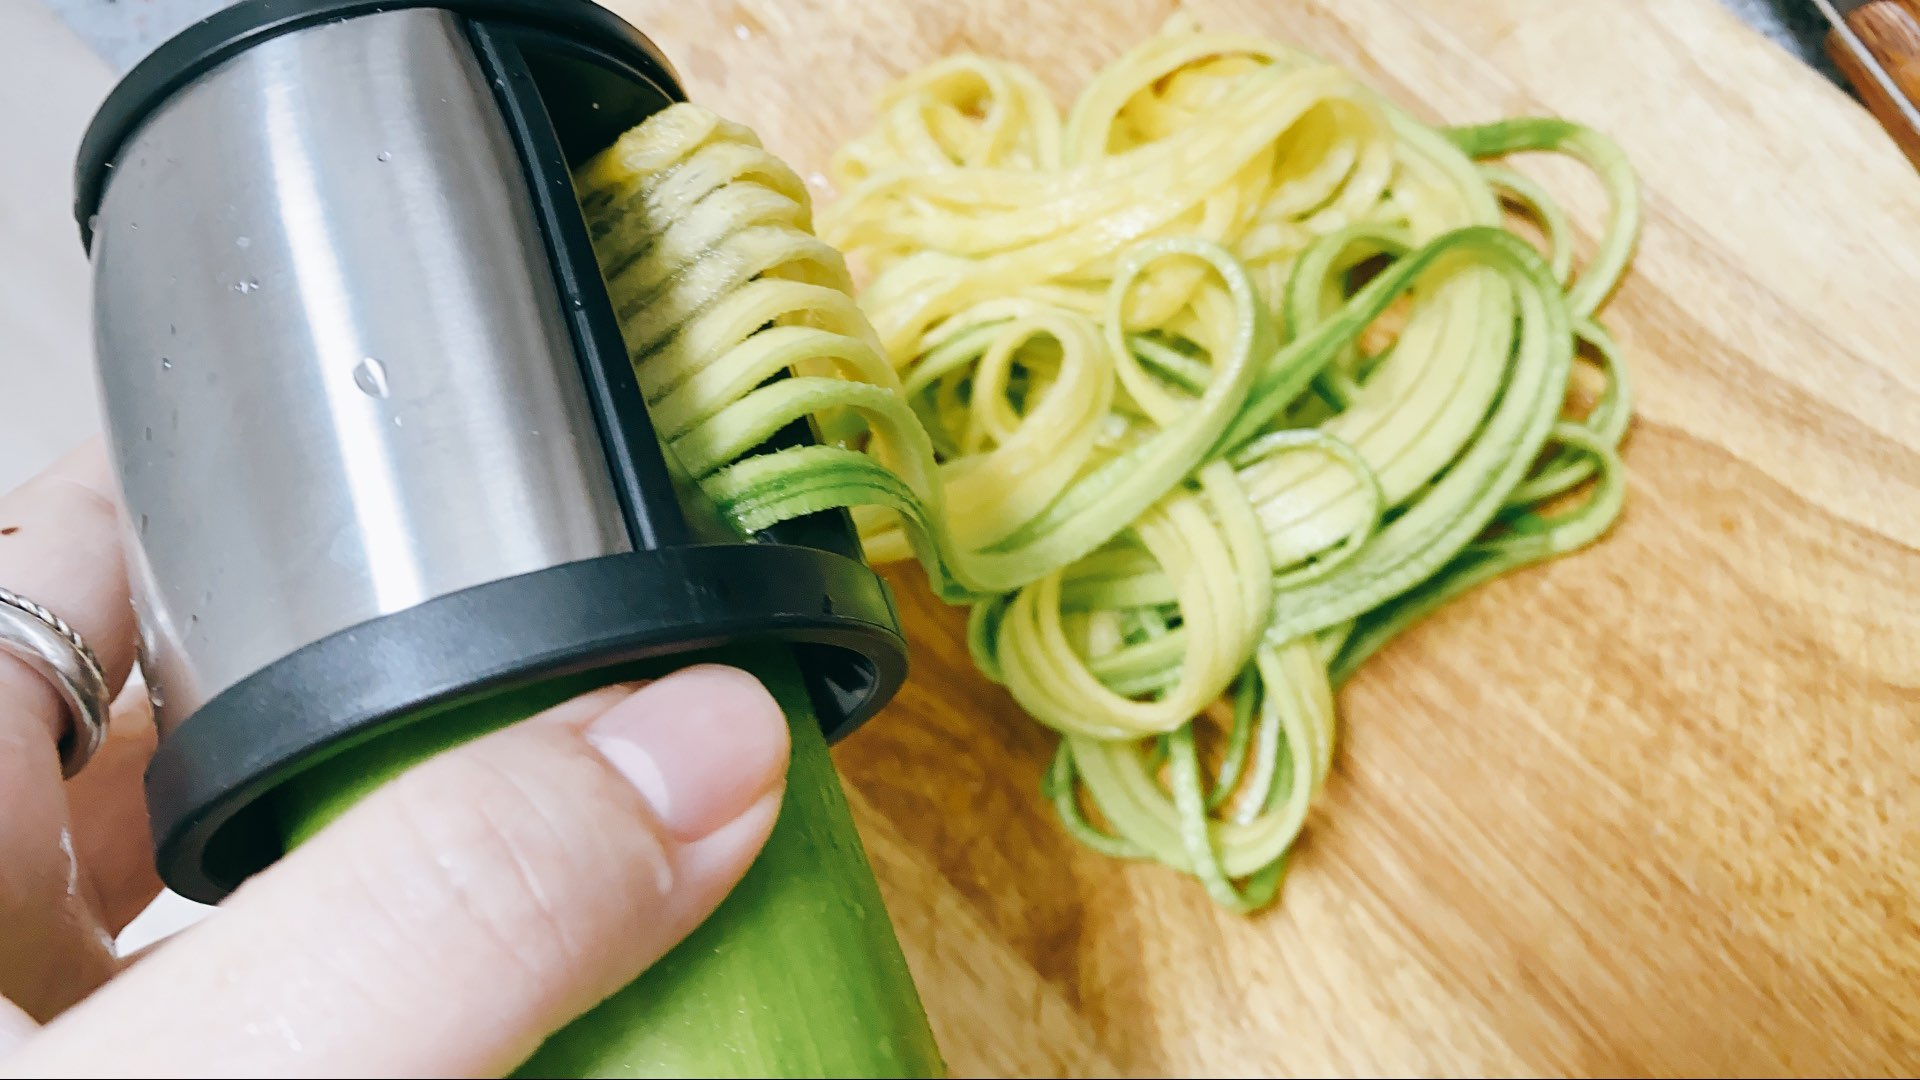 Blade Plant Kitchen Vegetable Slicer photo review